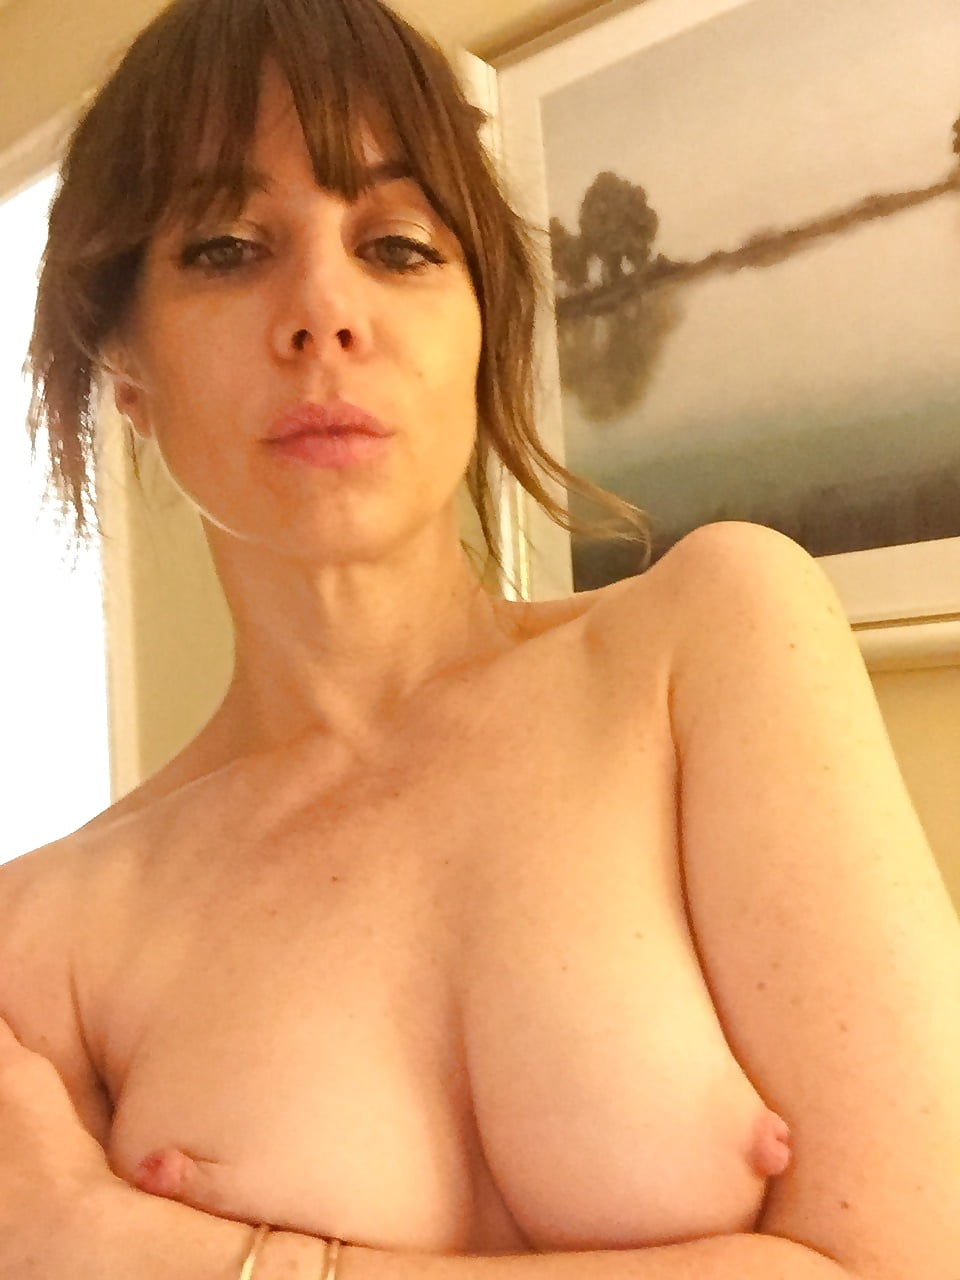 natasha-leggero-nude-naked-adult-fantasy-respirator-stories